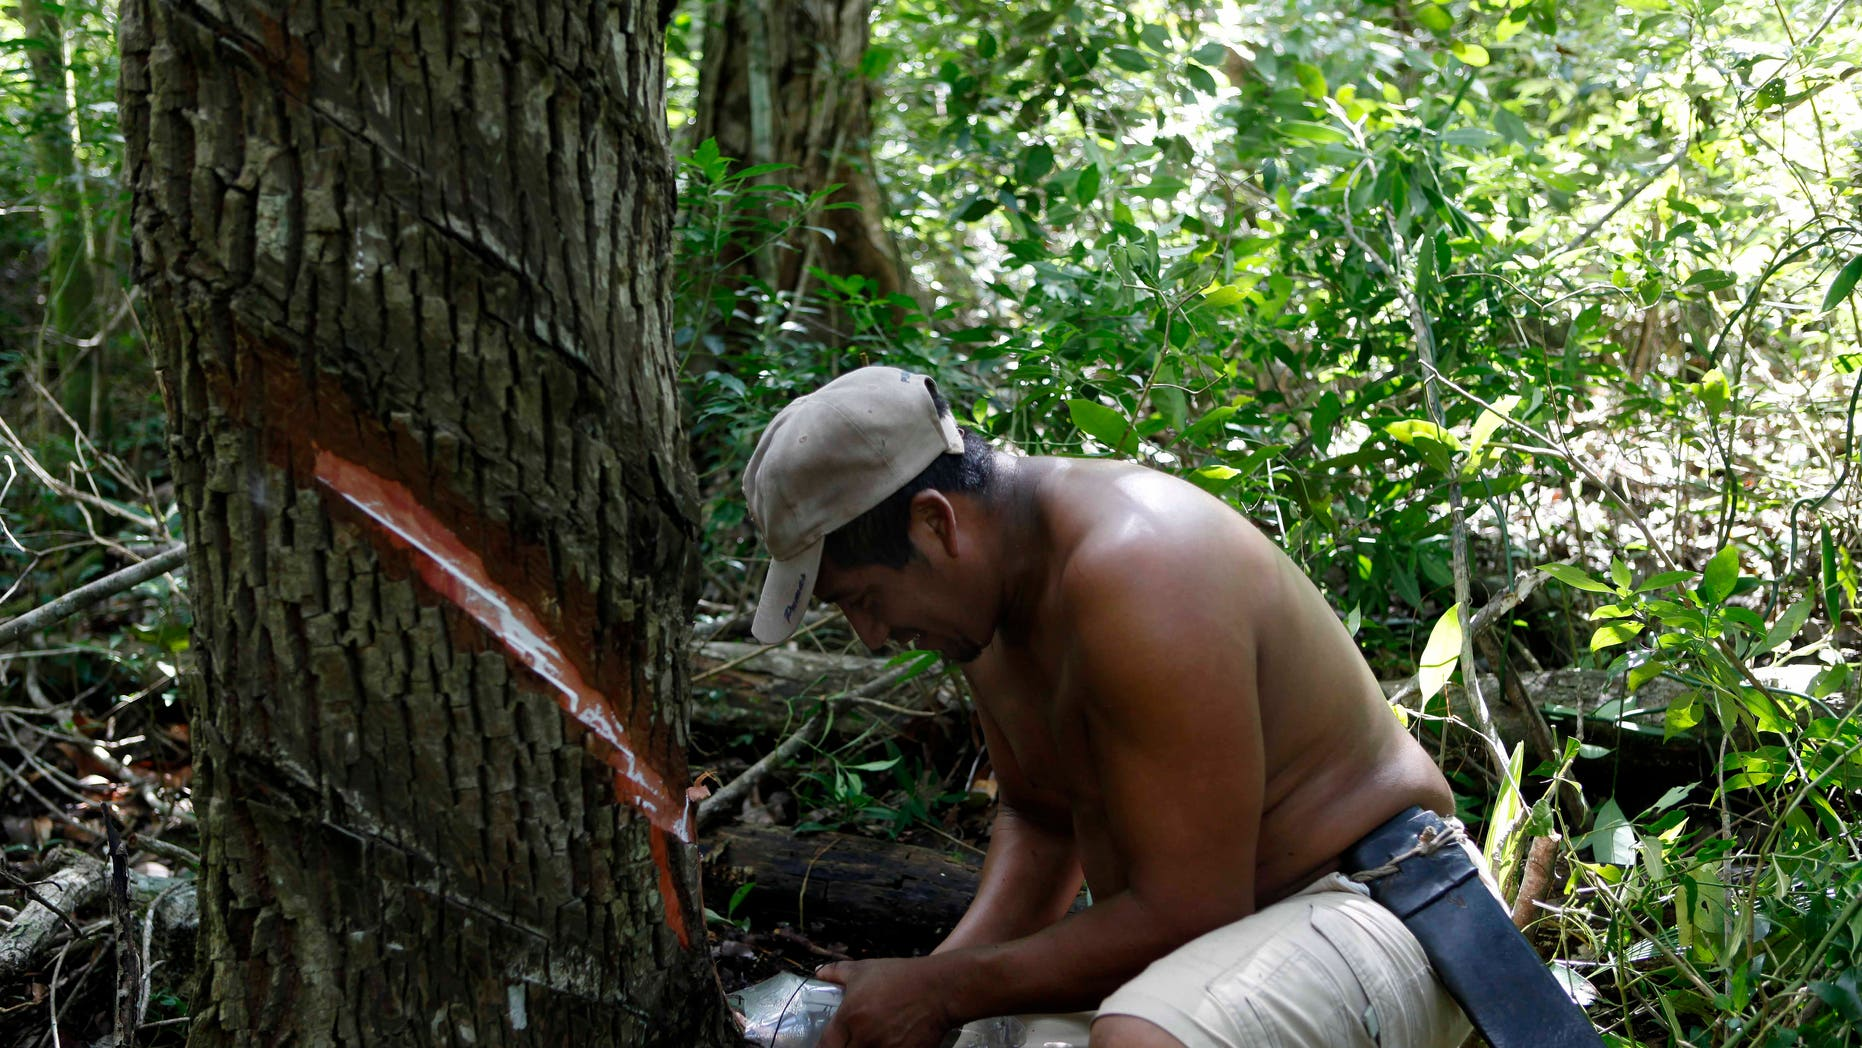 Mayan Indian Pedro Chuc May shown here on Nov. 30 collects sap from a tree known as 'gum tree', to produce handcrafted chewing gum in Betania, Mexico. The annual UN Climate Change Conference discussed slowing deforestation.